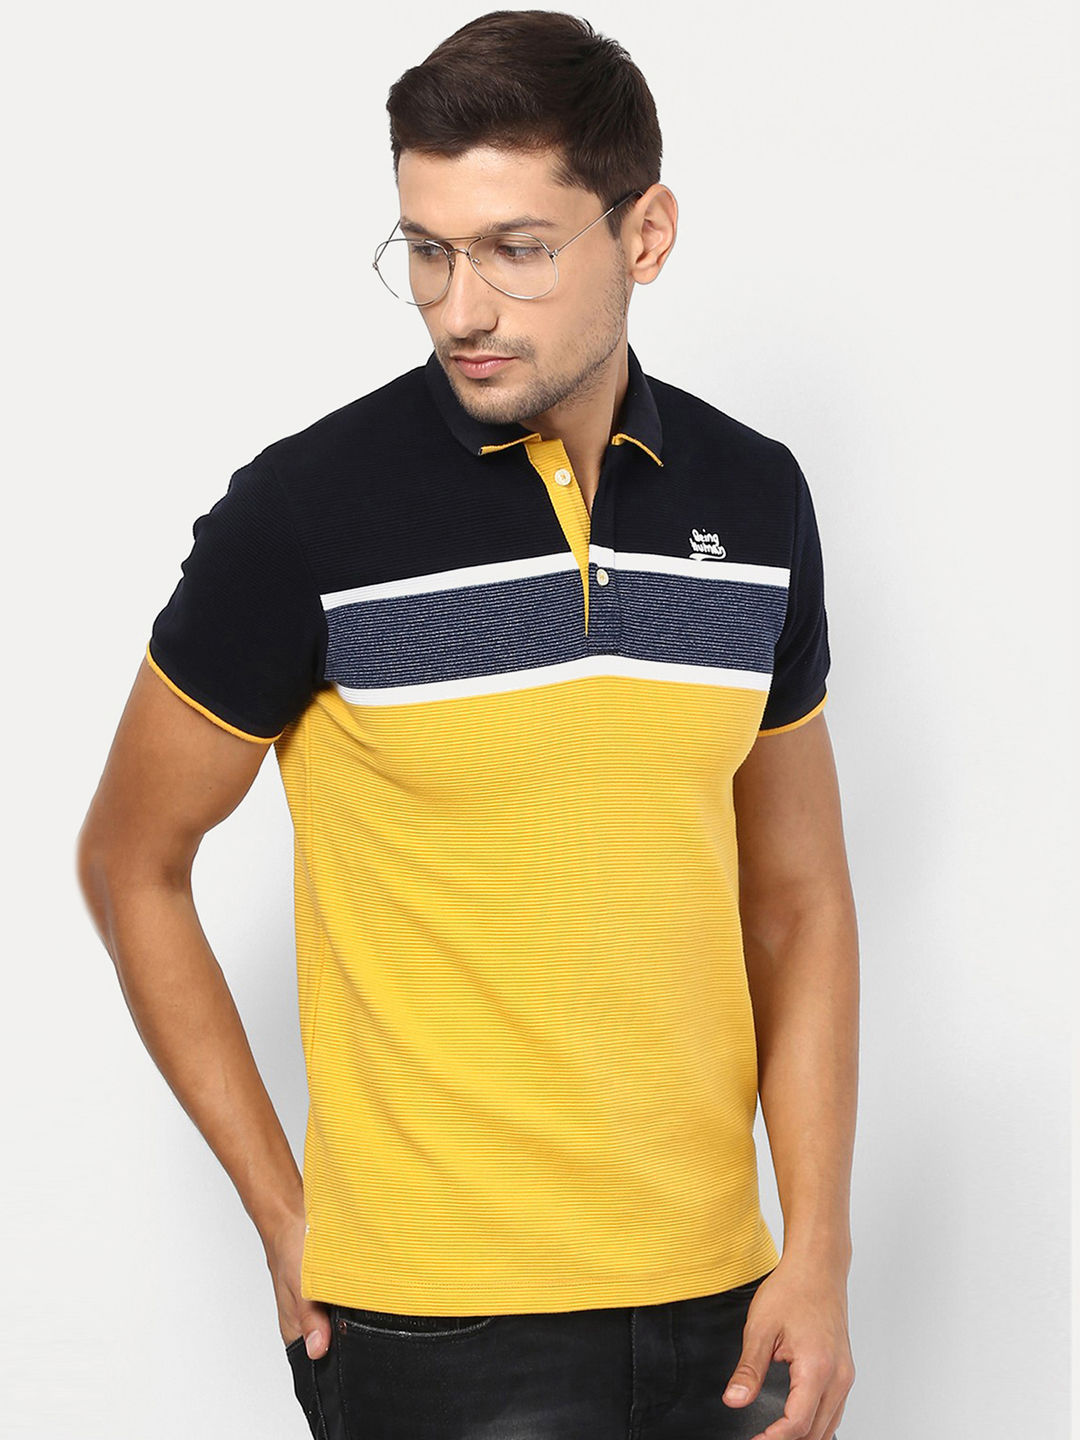 NAVY AND YELLOW COLOURBLOCK POLO T-SHIRT